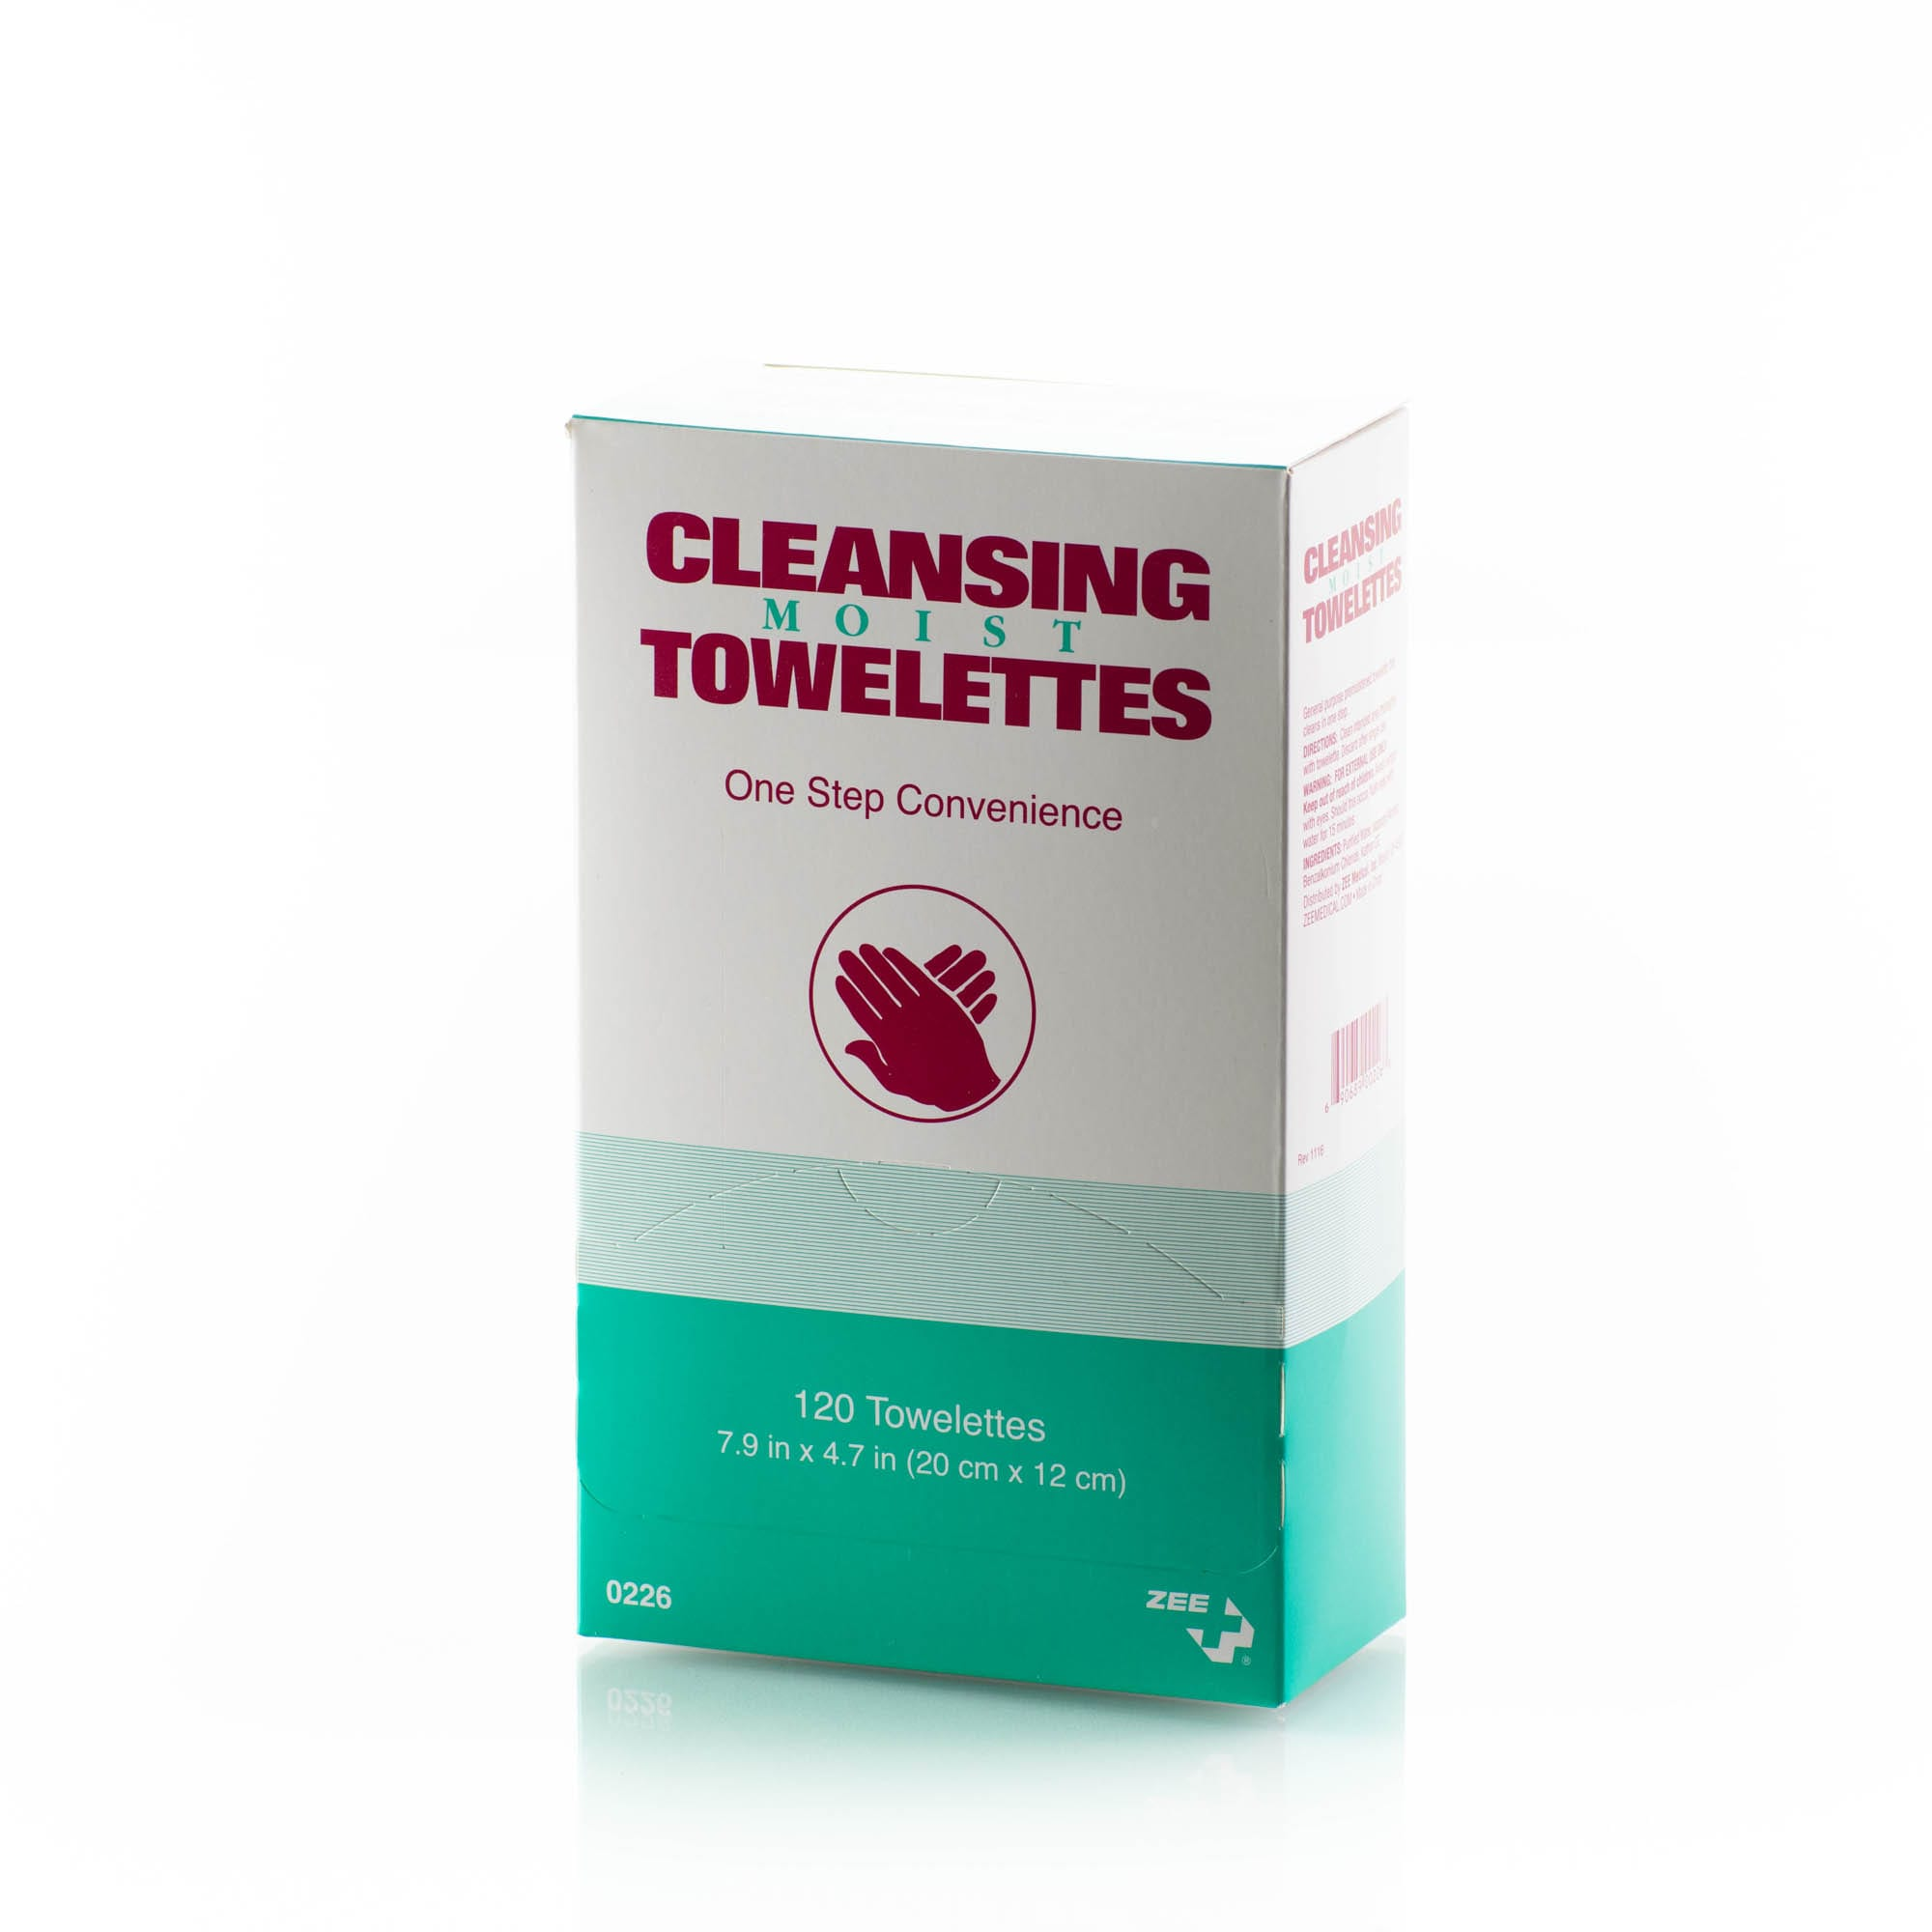 cleansing moist towelettes 120